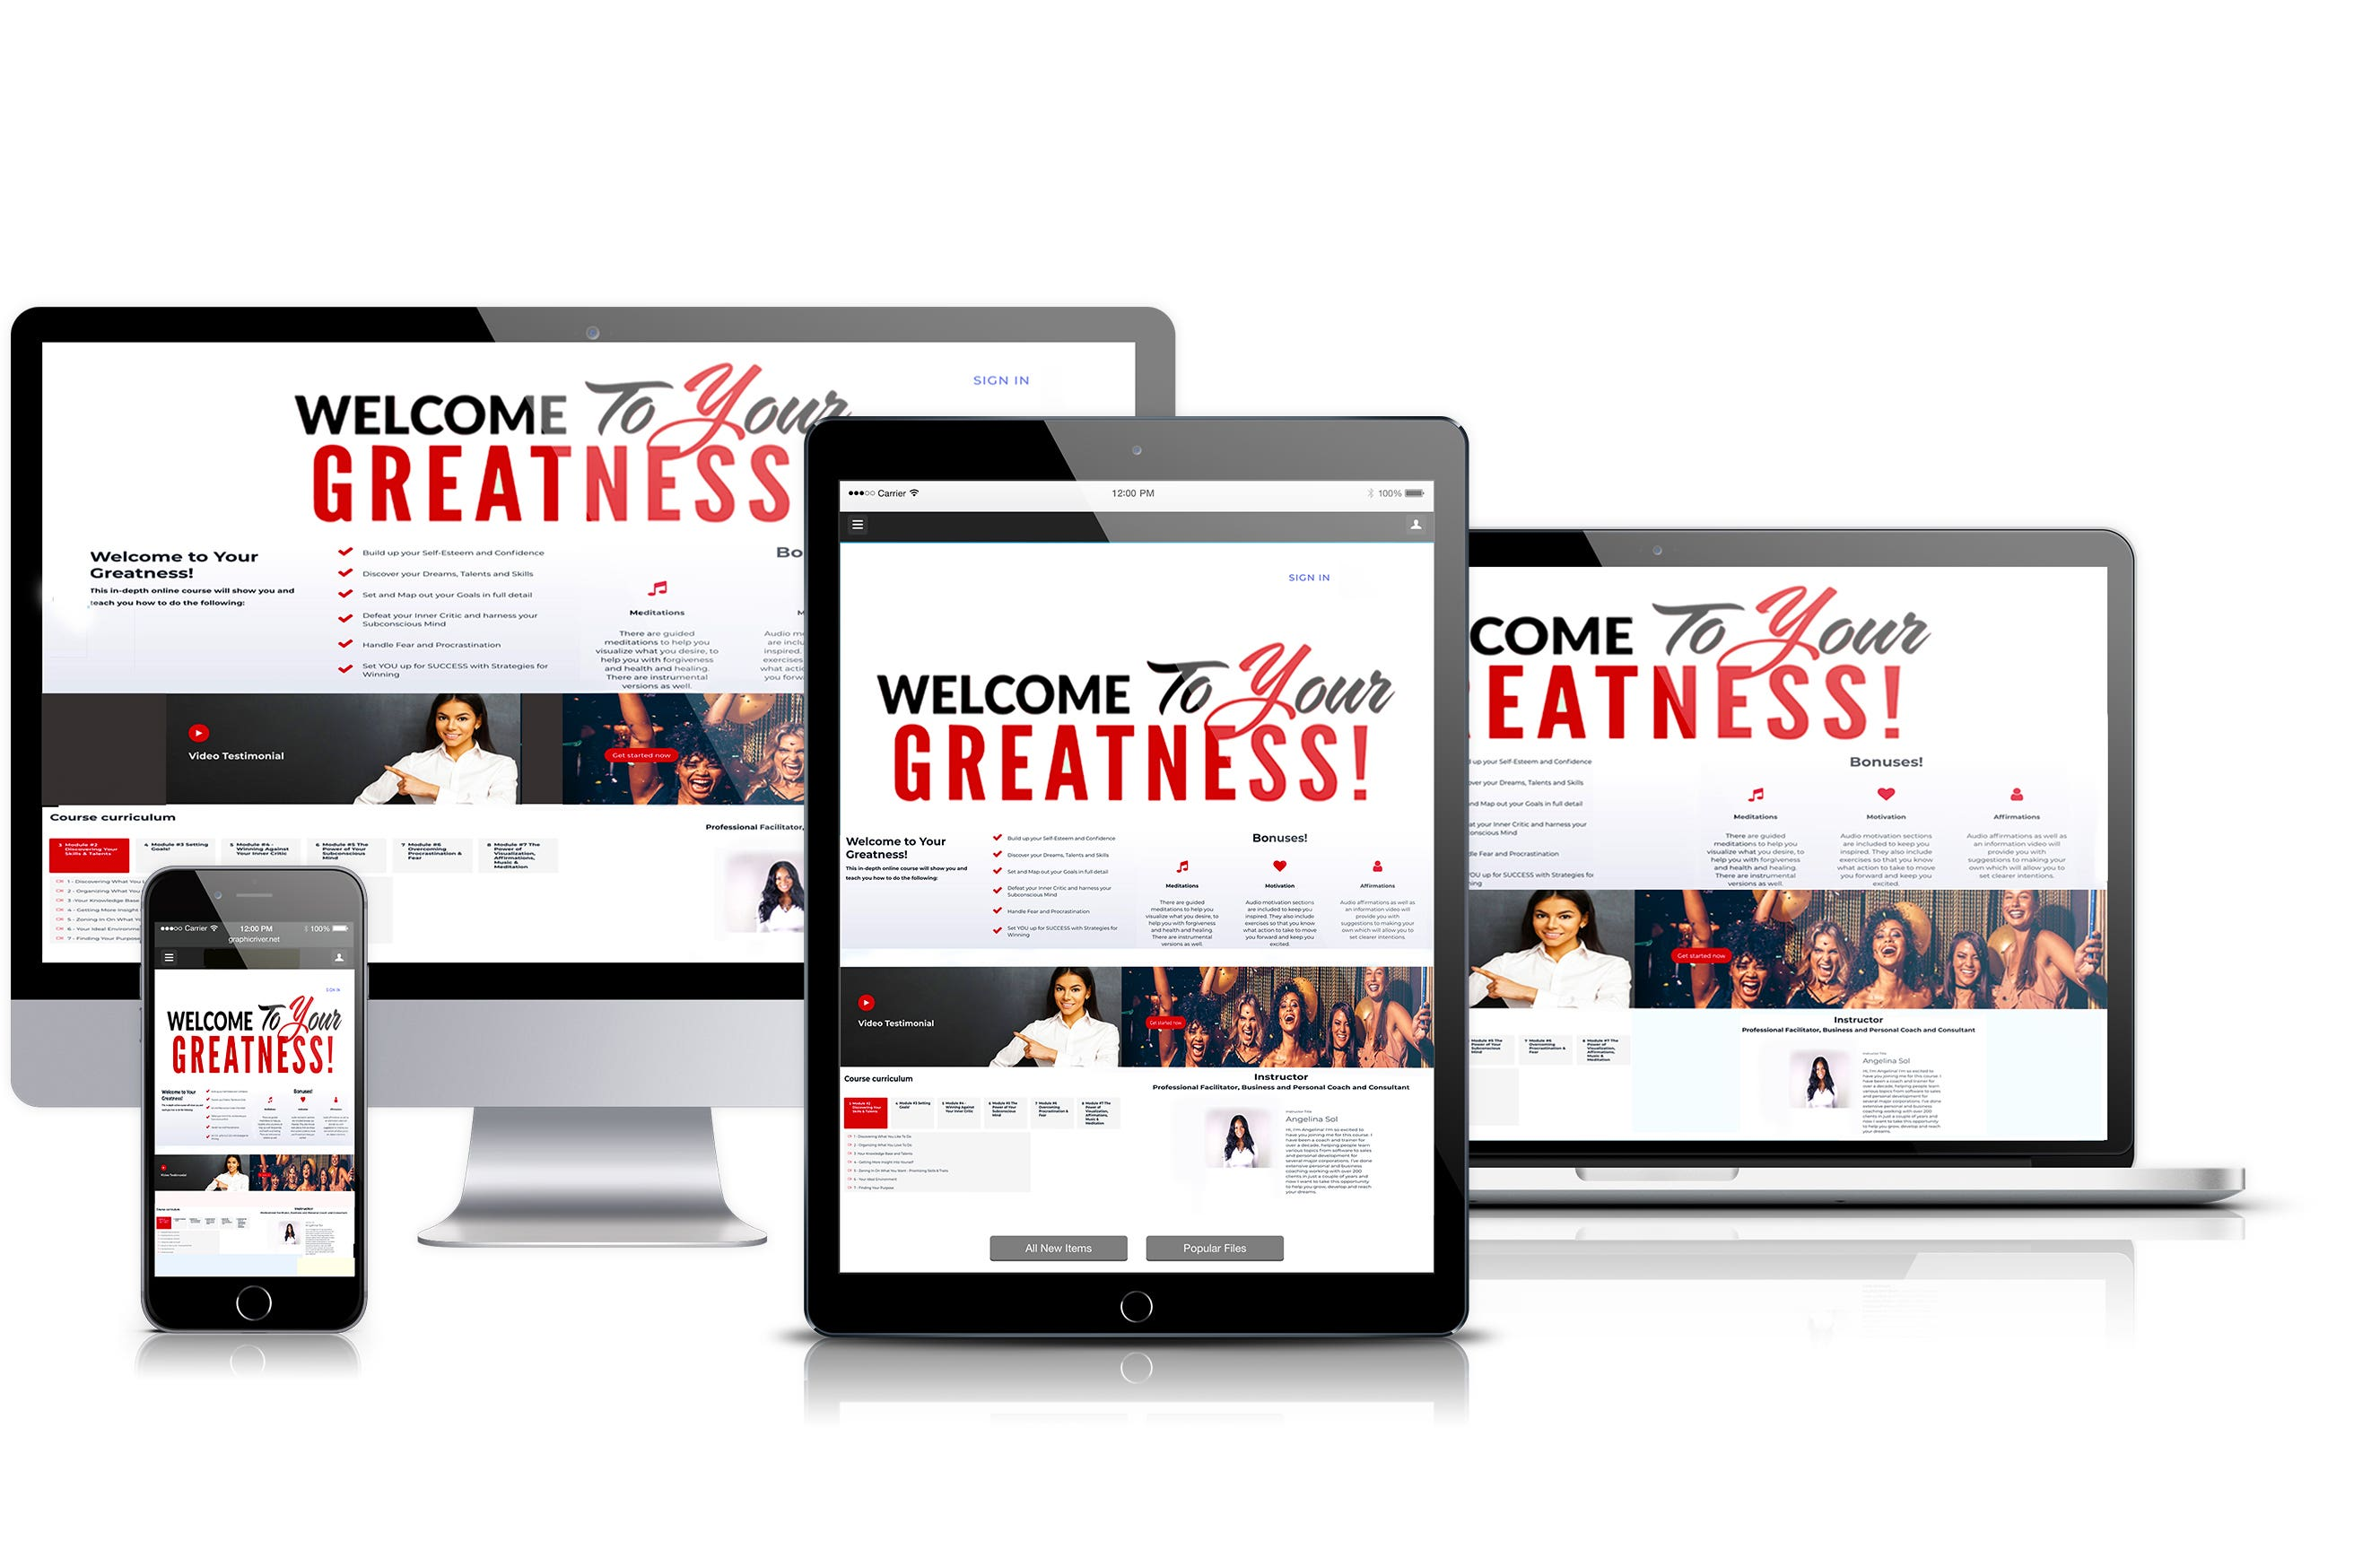 Get the complete course and bonuses here!